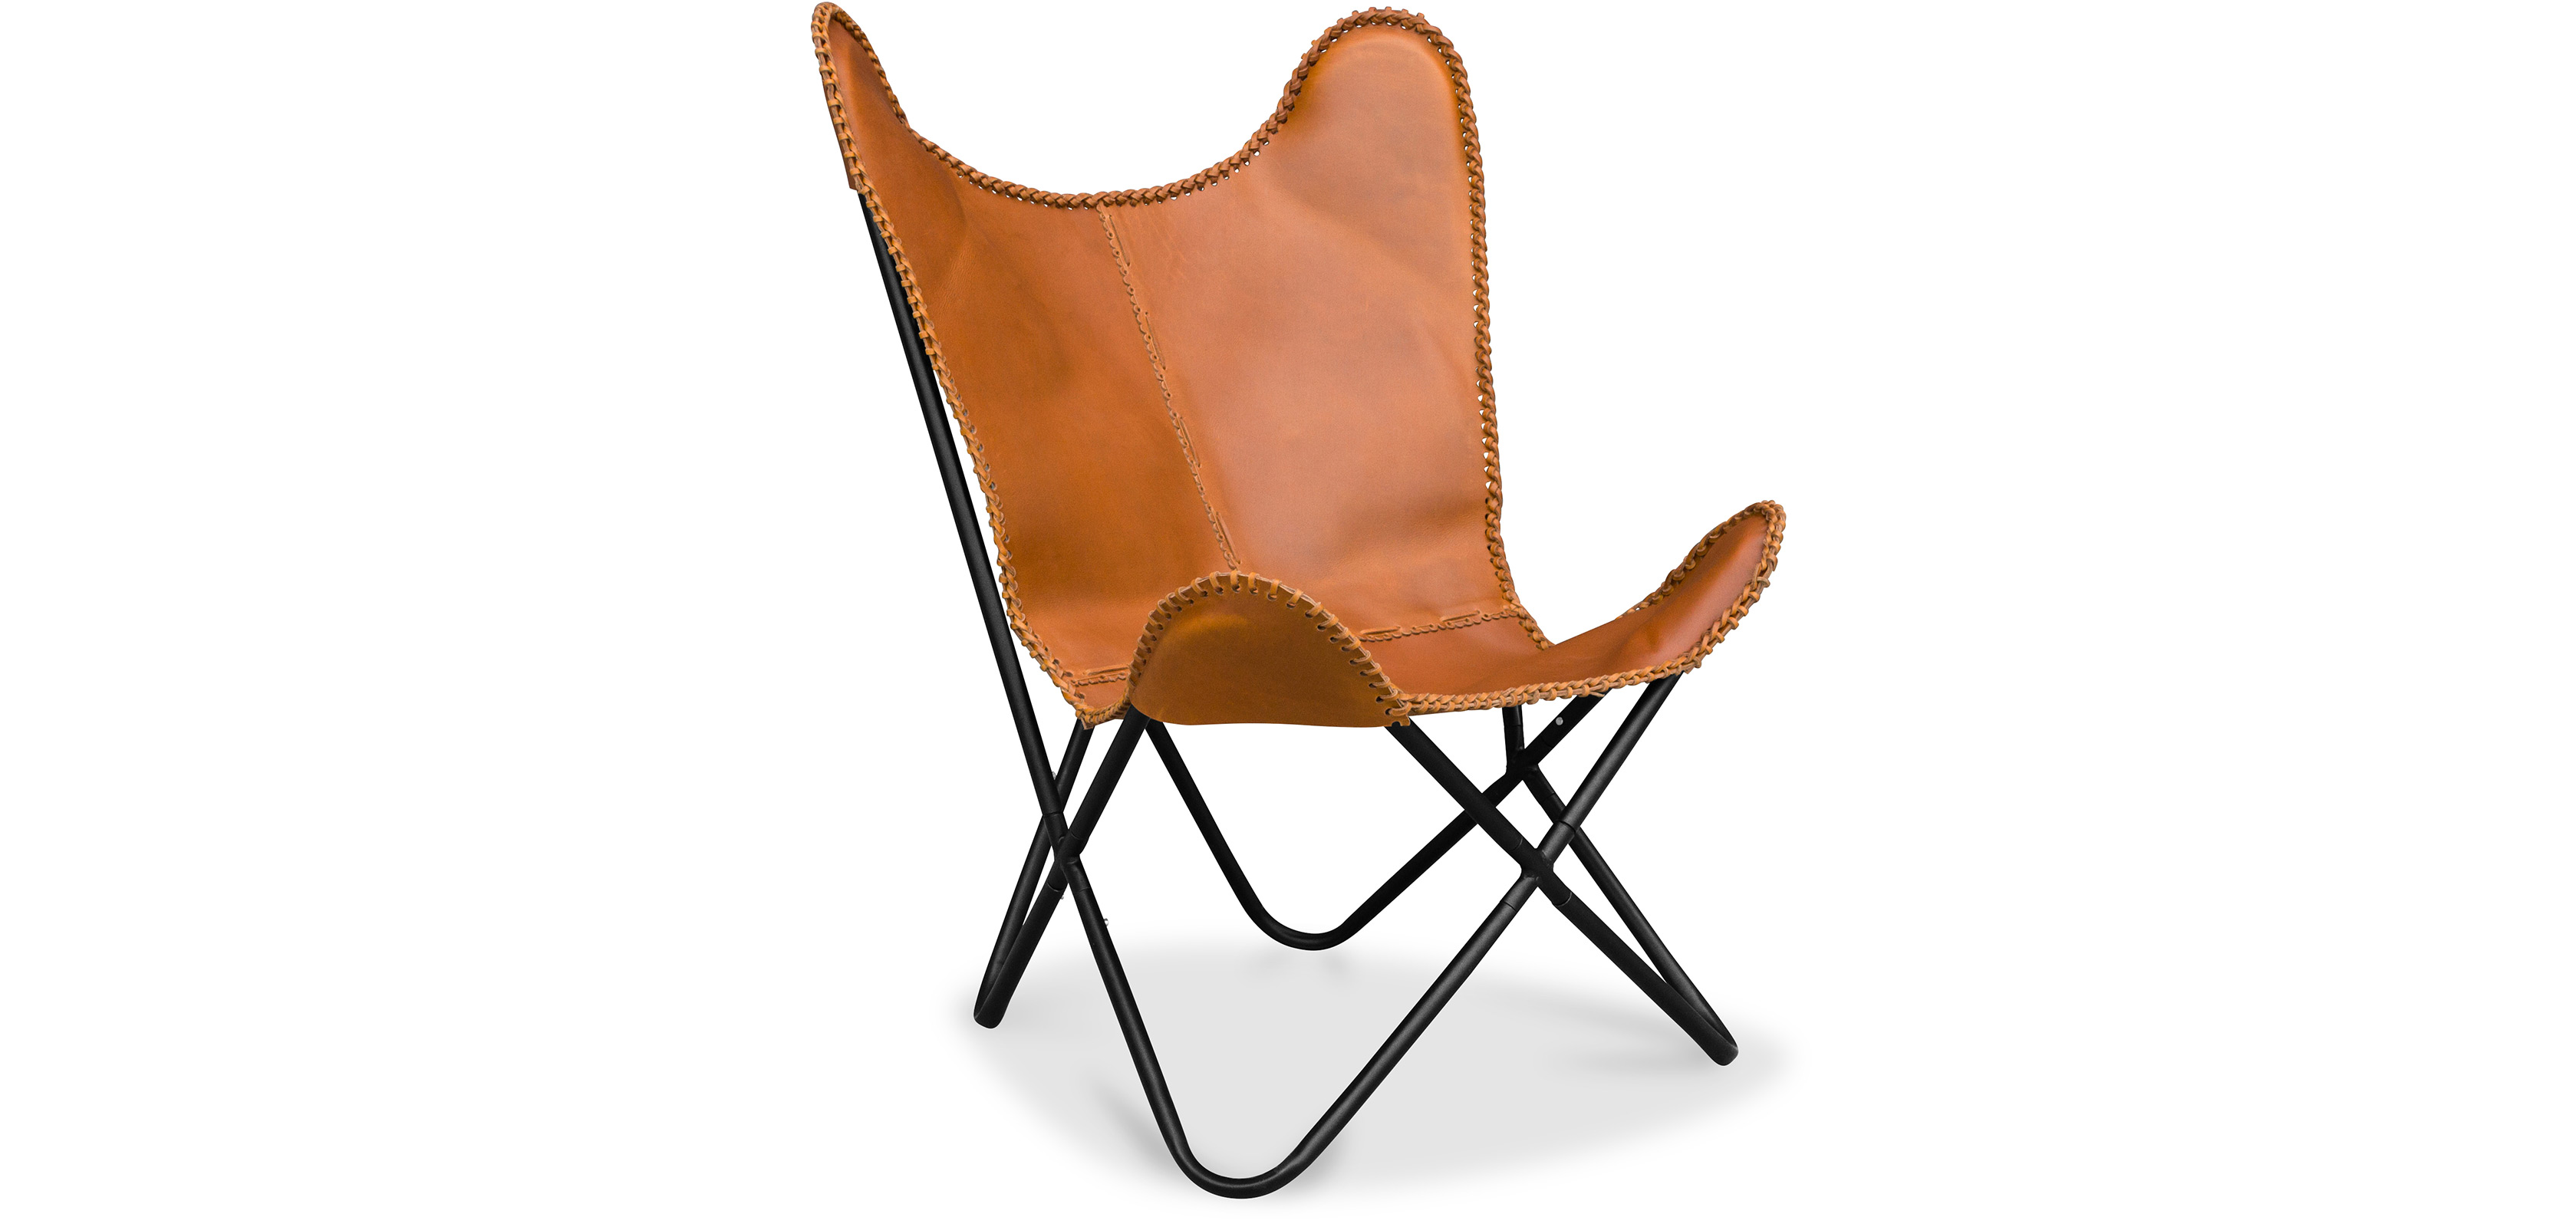 butterfly chair copper htm emmen charcoal leather amp